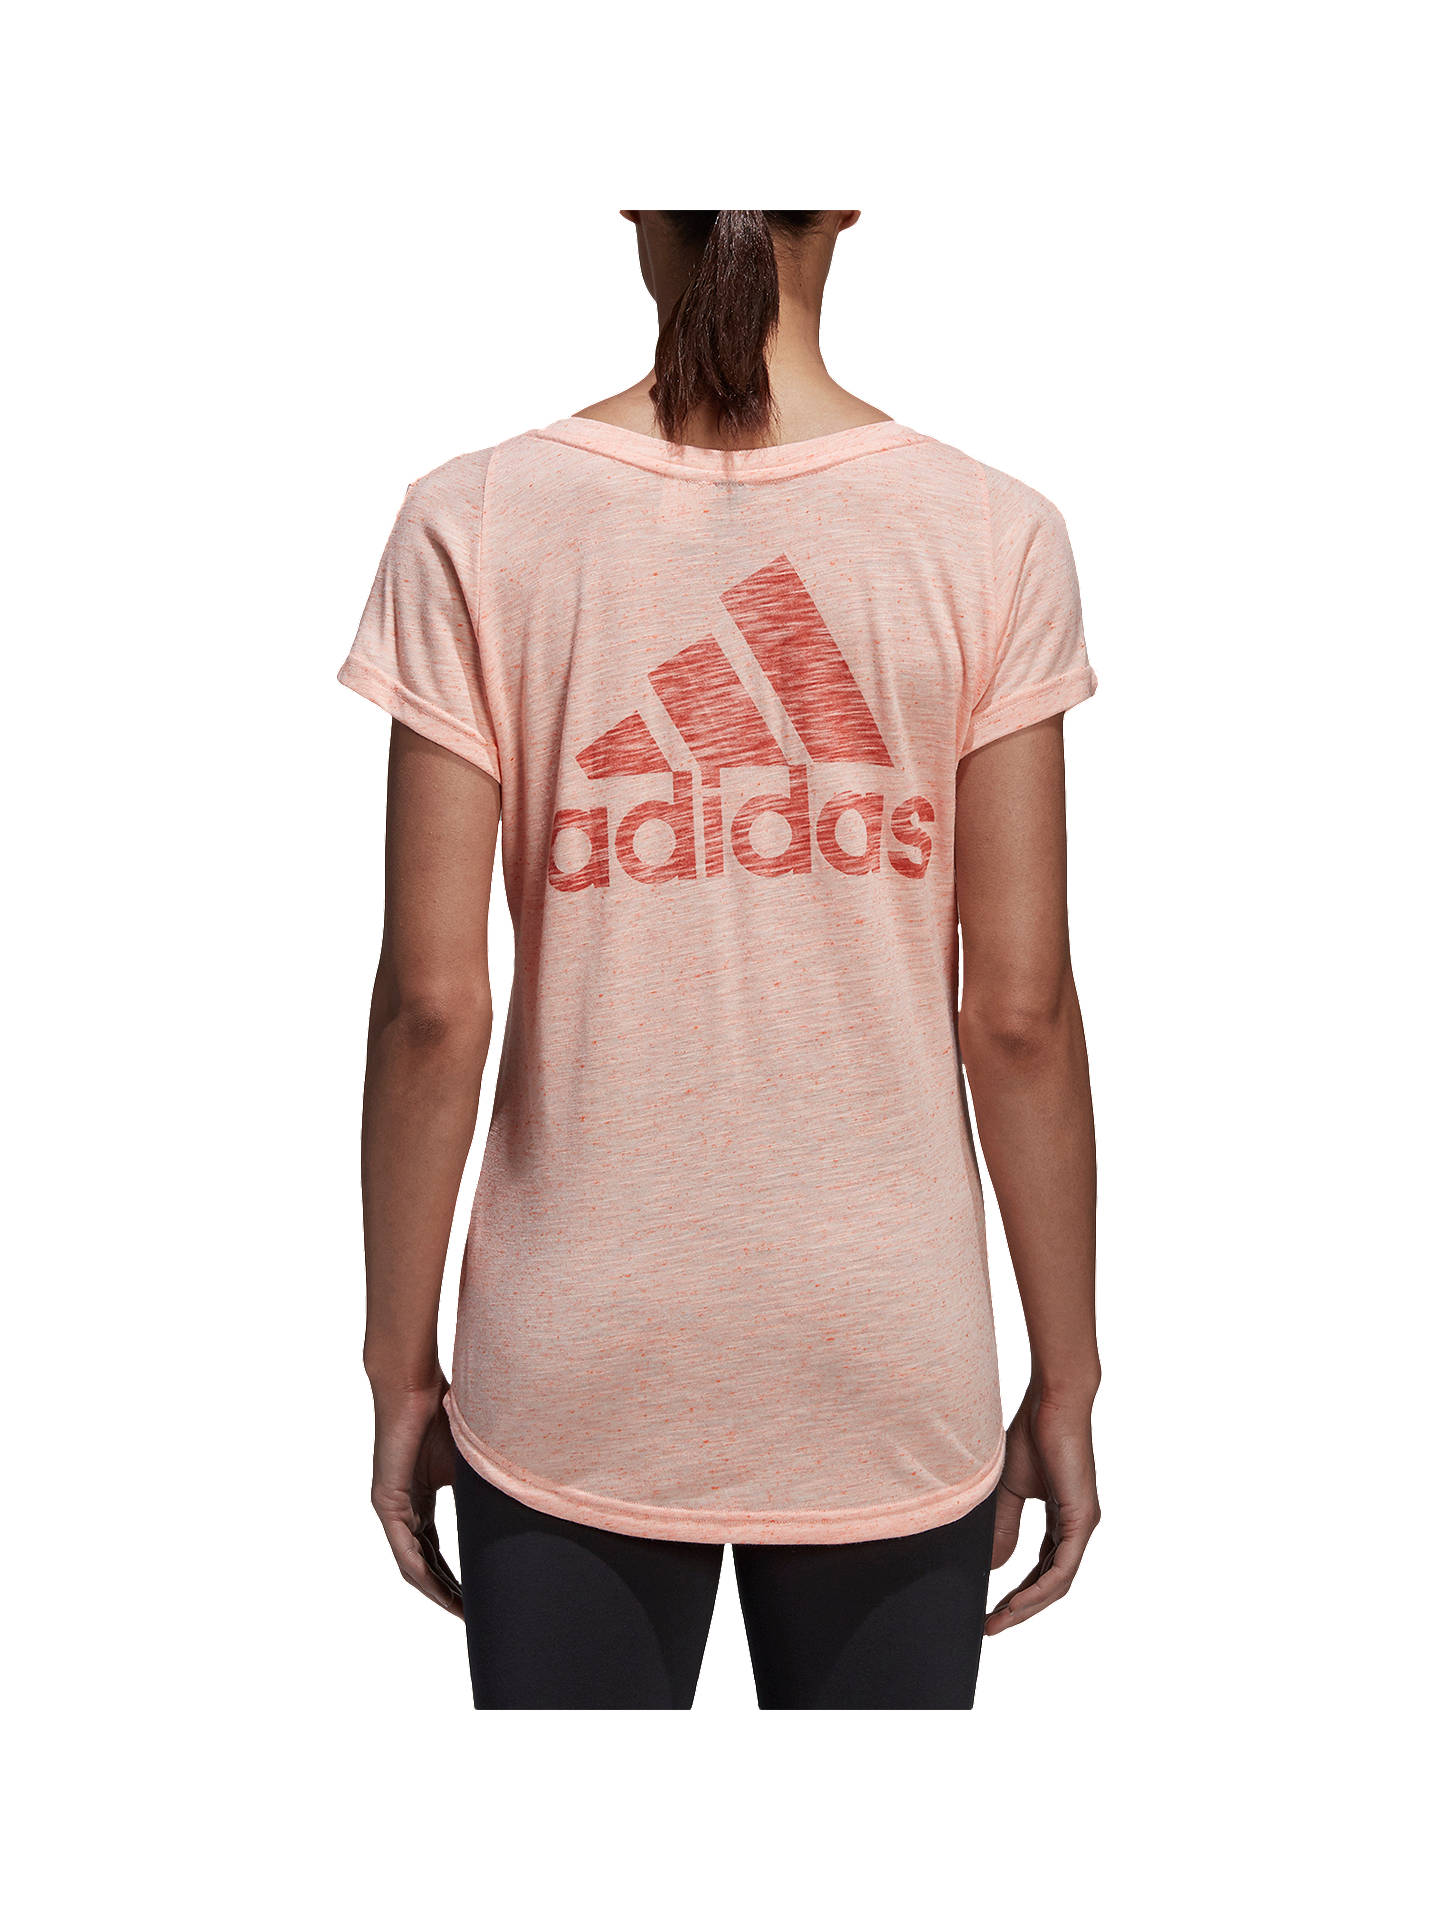 Buyadidas ID Winners T-Shirt, Haze Coral, XS Online at johnlewis.com